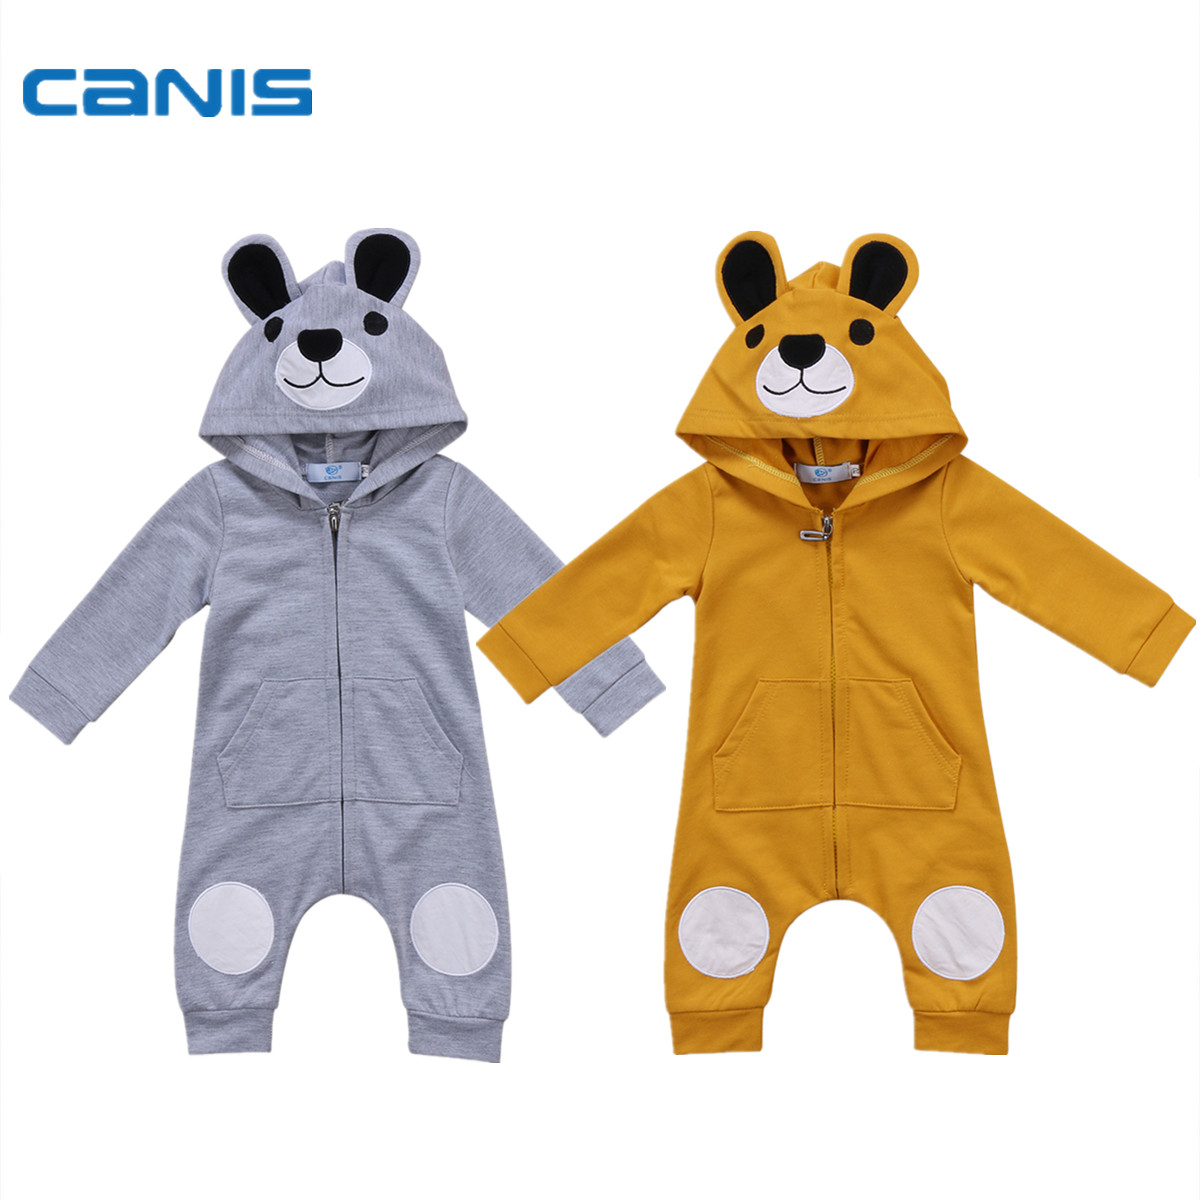 2017 Brand New Newborn Toddler Infant Baby Clothes Sets Girls Boy Clothes Bear Romper Jumpsui Fall Winter Outwear Outfits 0-24M 0 24m newborn infant baby boy girl clothes set romper bodysuit tops rainbow long pants hat 3pcs toddler winter fall outfits